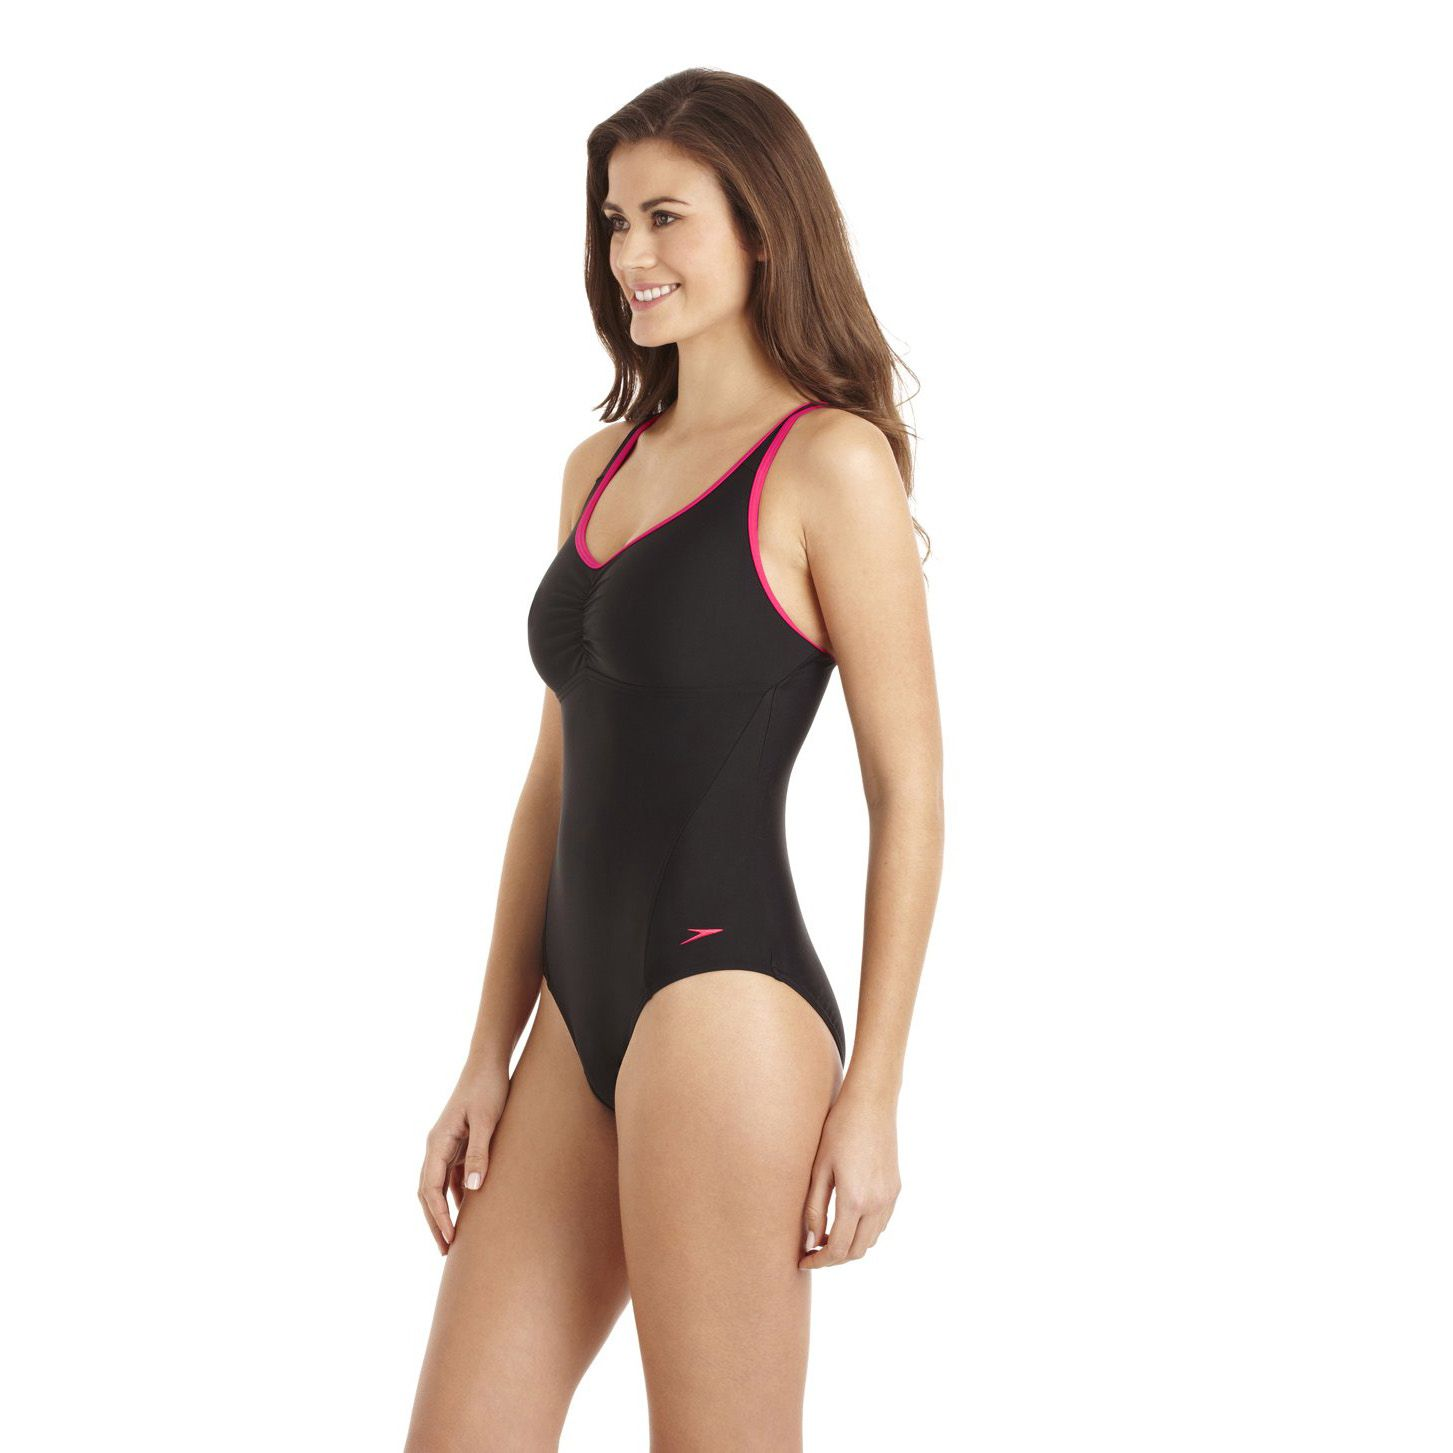 Hb Two Personal Storage additionally Speedo Pureshape 1 Piece Swimsuit furthermore Speedo Endurance 10 Logo Splashback Girls Swimsuit furthermore Hoofdsleutel furthermore Nike Lunarglide 5 Review. on two way fabric